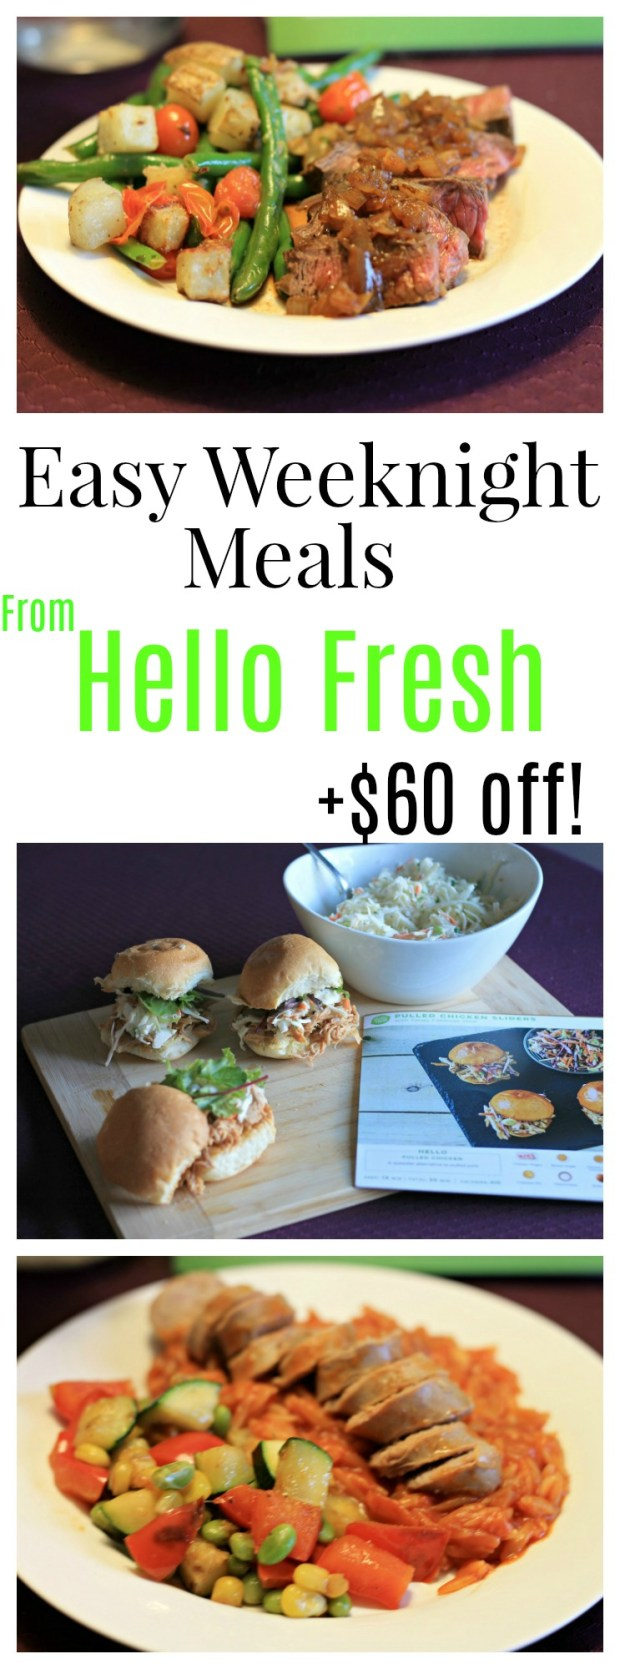 Dinnertime can be easy again! Hello Fresh provides fresh ingredients and easy meals shipped right to your door, and most meals are ready in under 30 minutes!